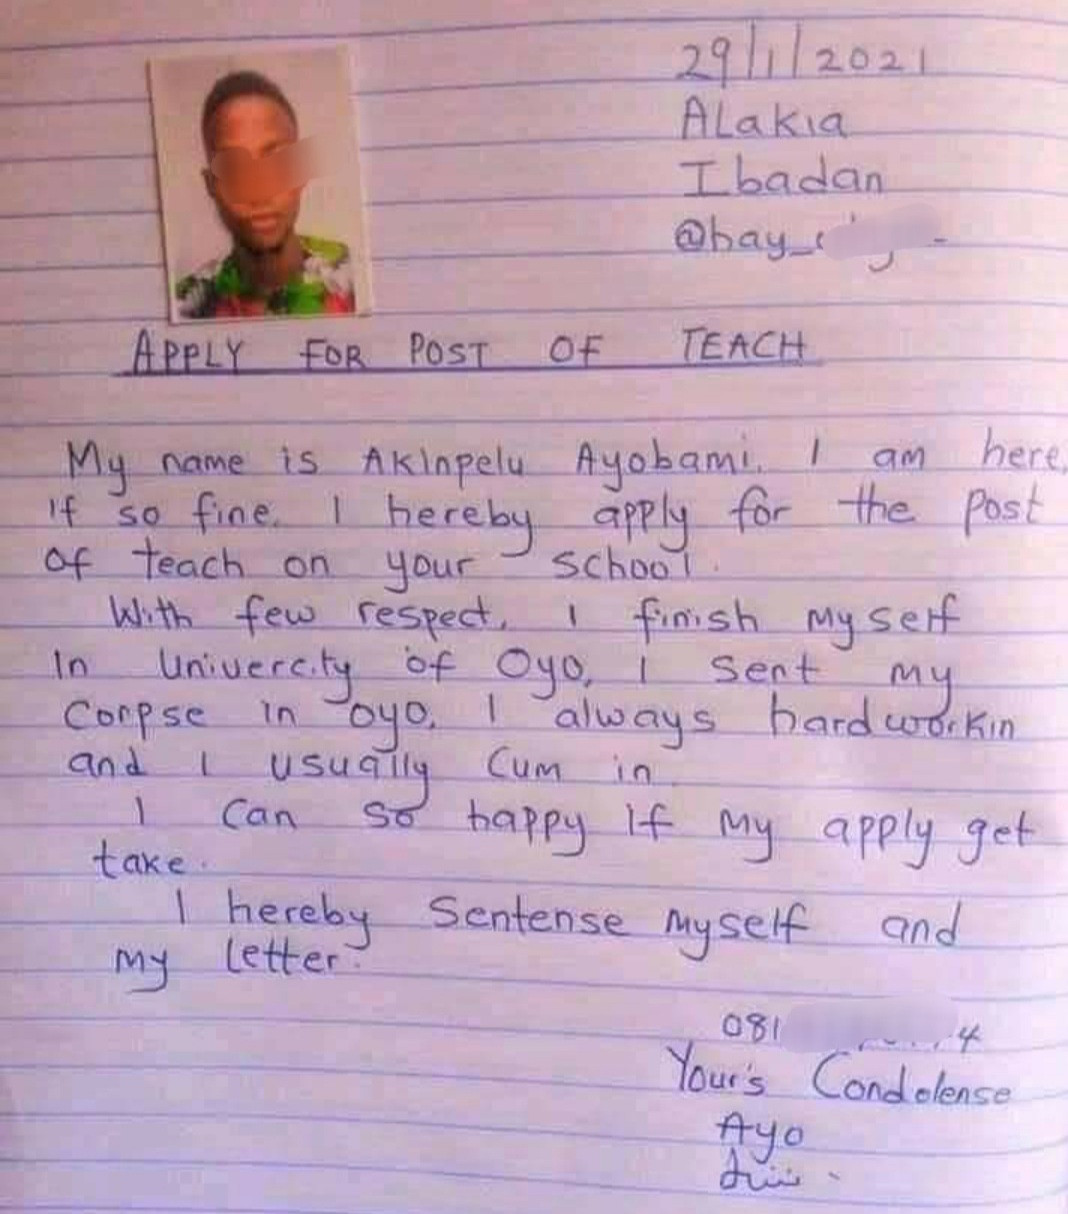 Can this be real? Application letter from a man hoping to be a teacher goes viral